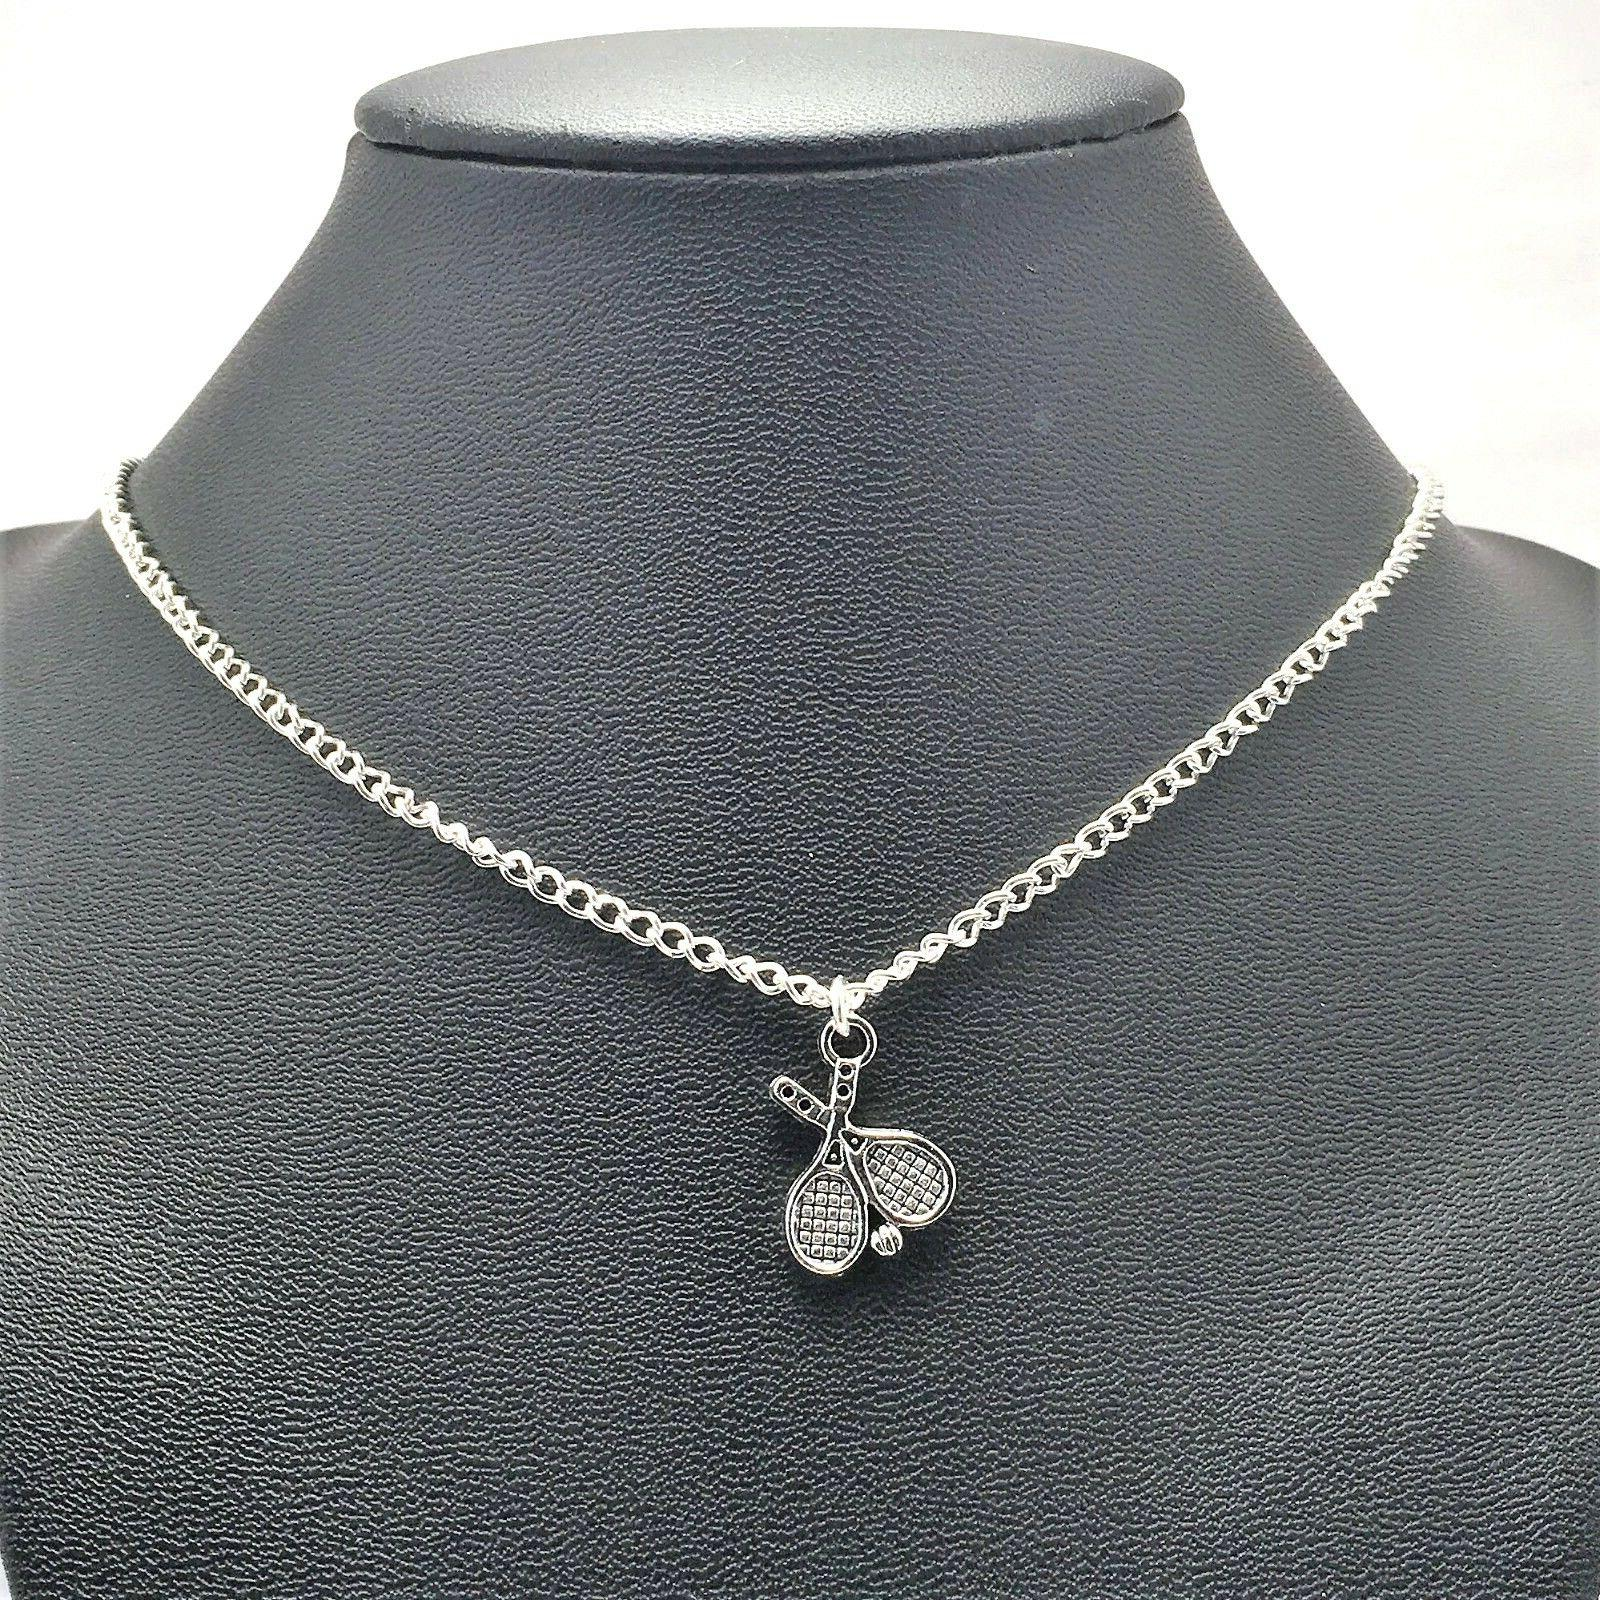 tennis racket sport necklace sterling silver plated